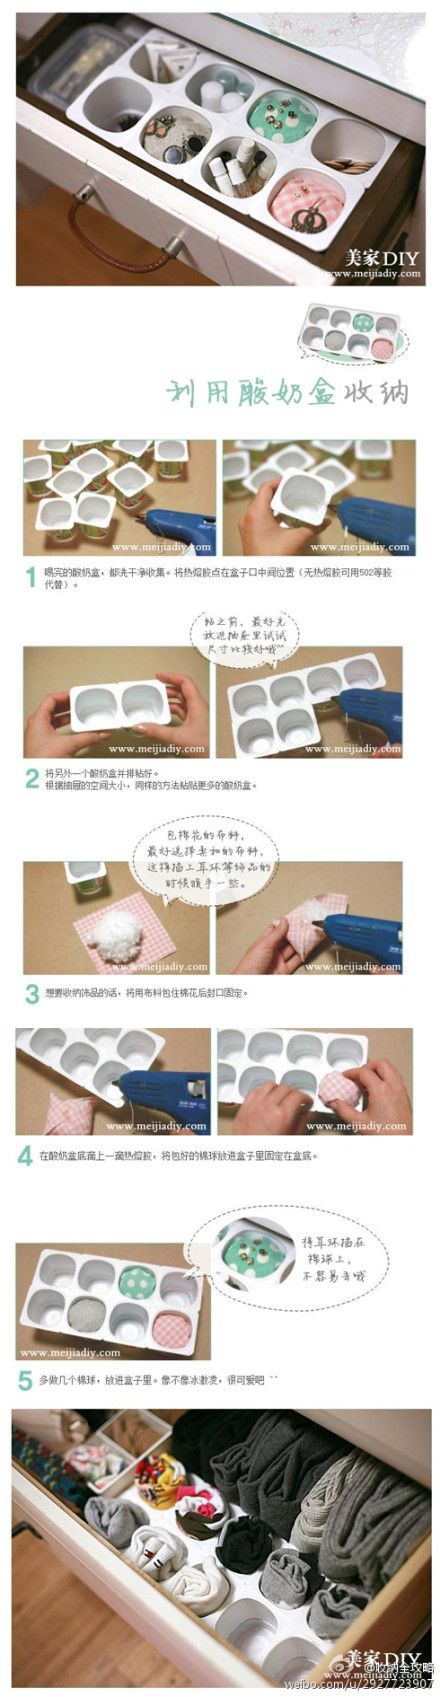 Easy DIY storage made out of washed out yogurt containers.  Just hot glue the clean yogurt containers together.  You can use them for jewelry, make up, socks, underwear, you name it!